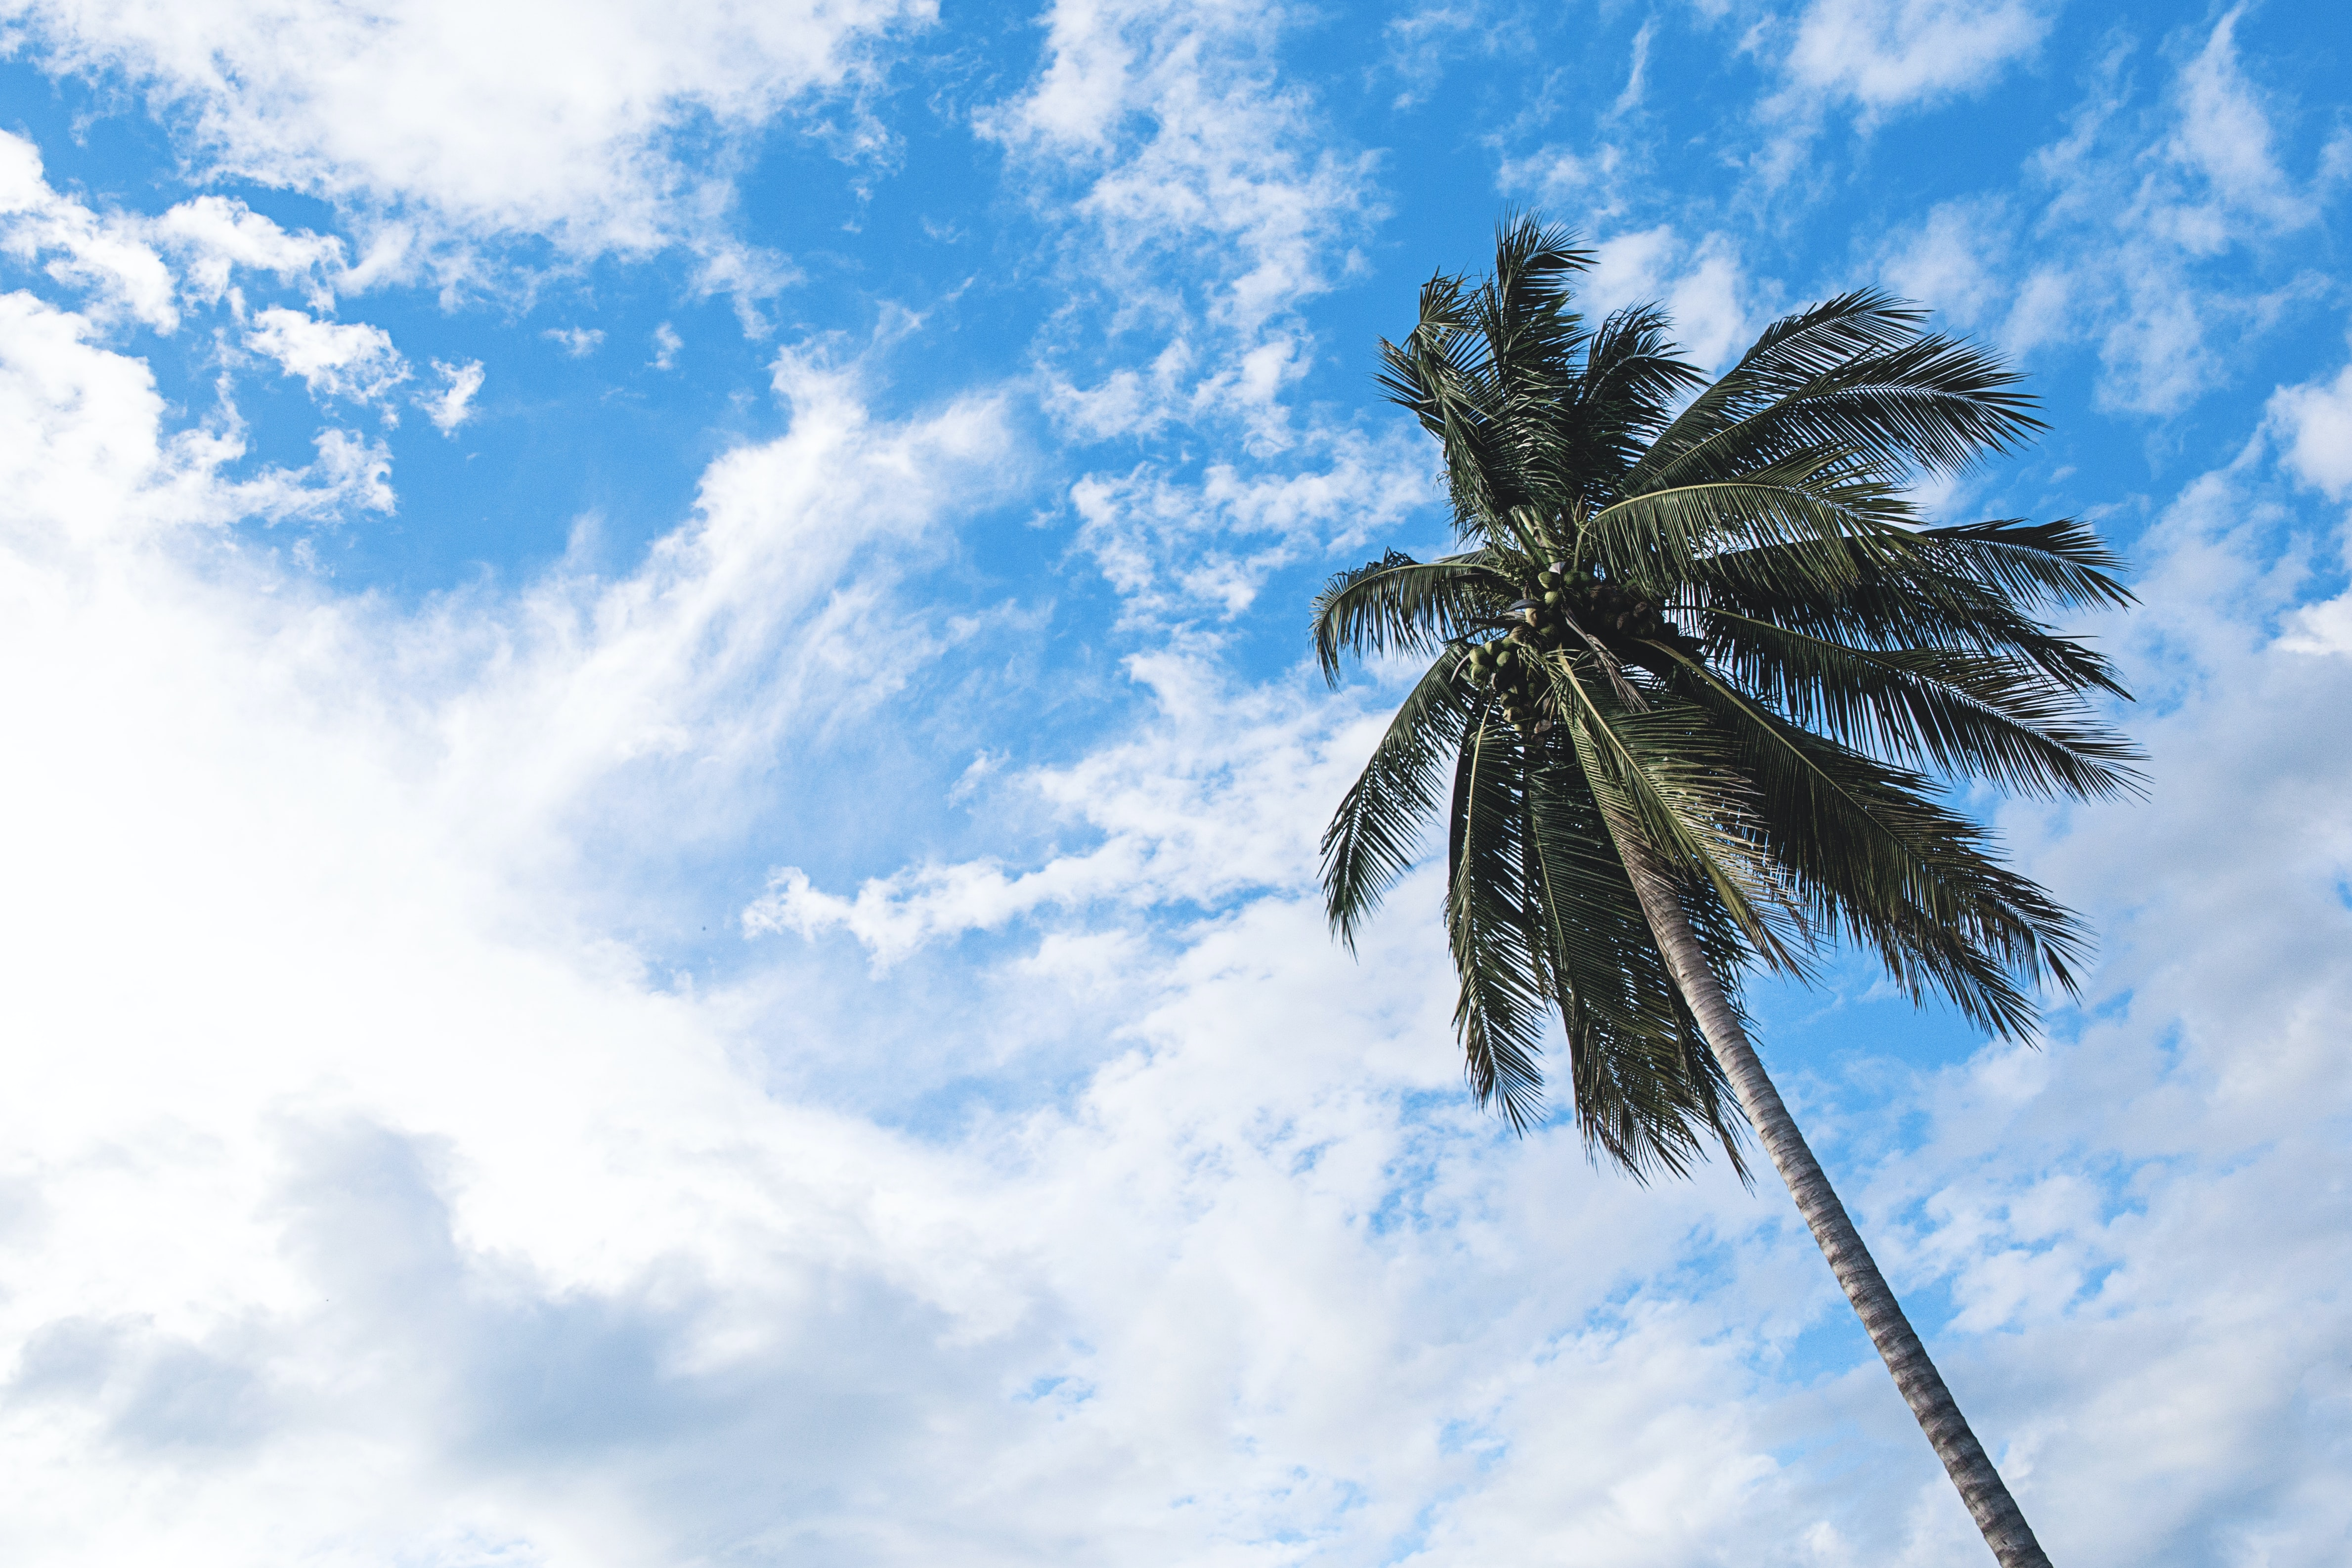 Looking up at a palm tree against a bright blue sky with bright clouds